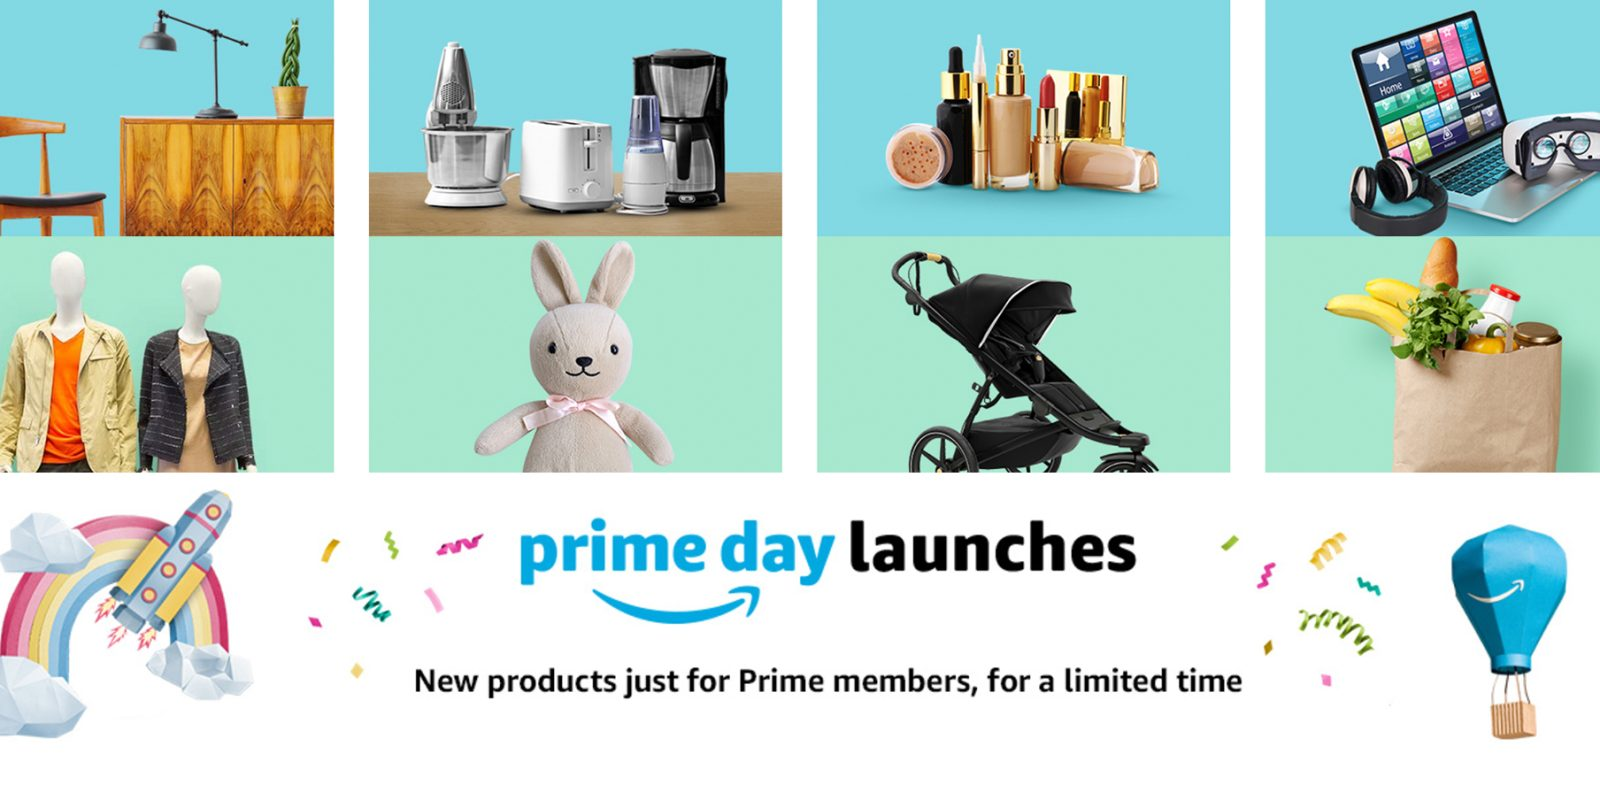 Amazon Prime Day set to launch 50 exclusive products: LEGO, Belkin, many more